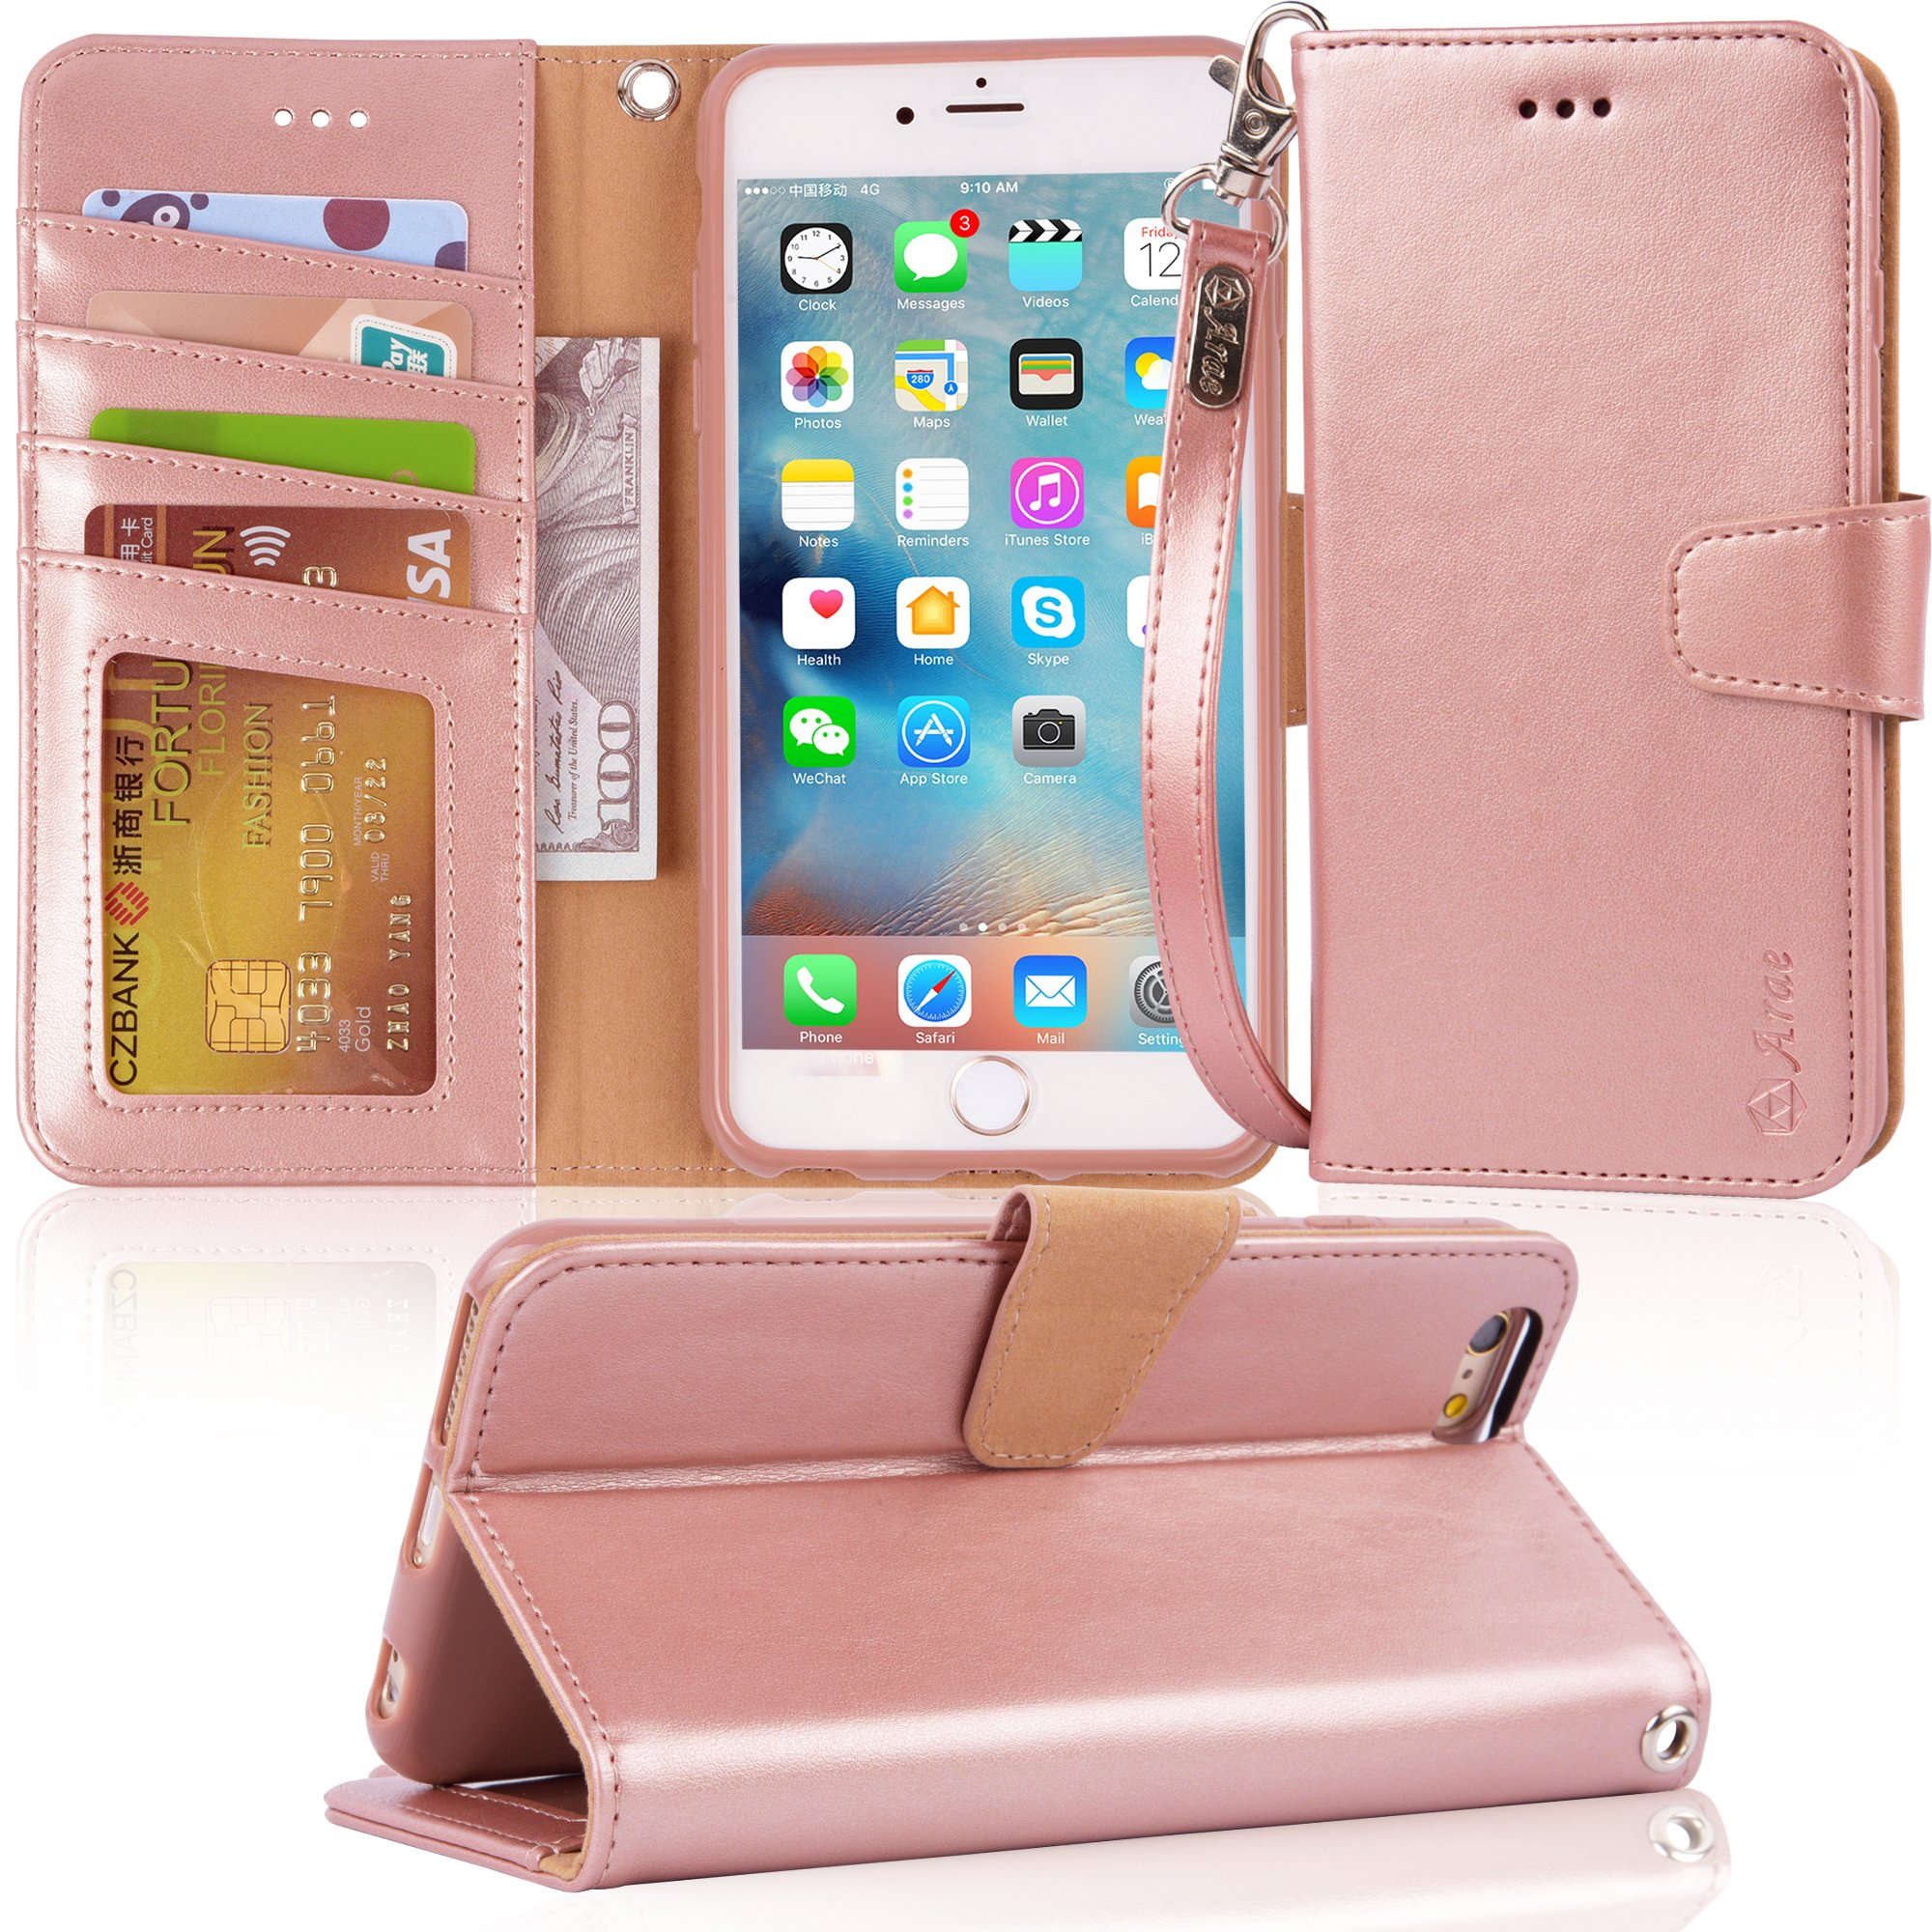 Arae Wallet case for iPhone 6s Plus/iPhone 6 Plus [Kickstand Feature] PU Leather with ID&Credit Card Pockets for iPhone 6 Plus / 6S Plus 5.5'' (not for 6/6s) (Rosegold)